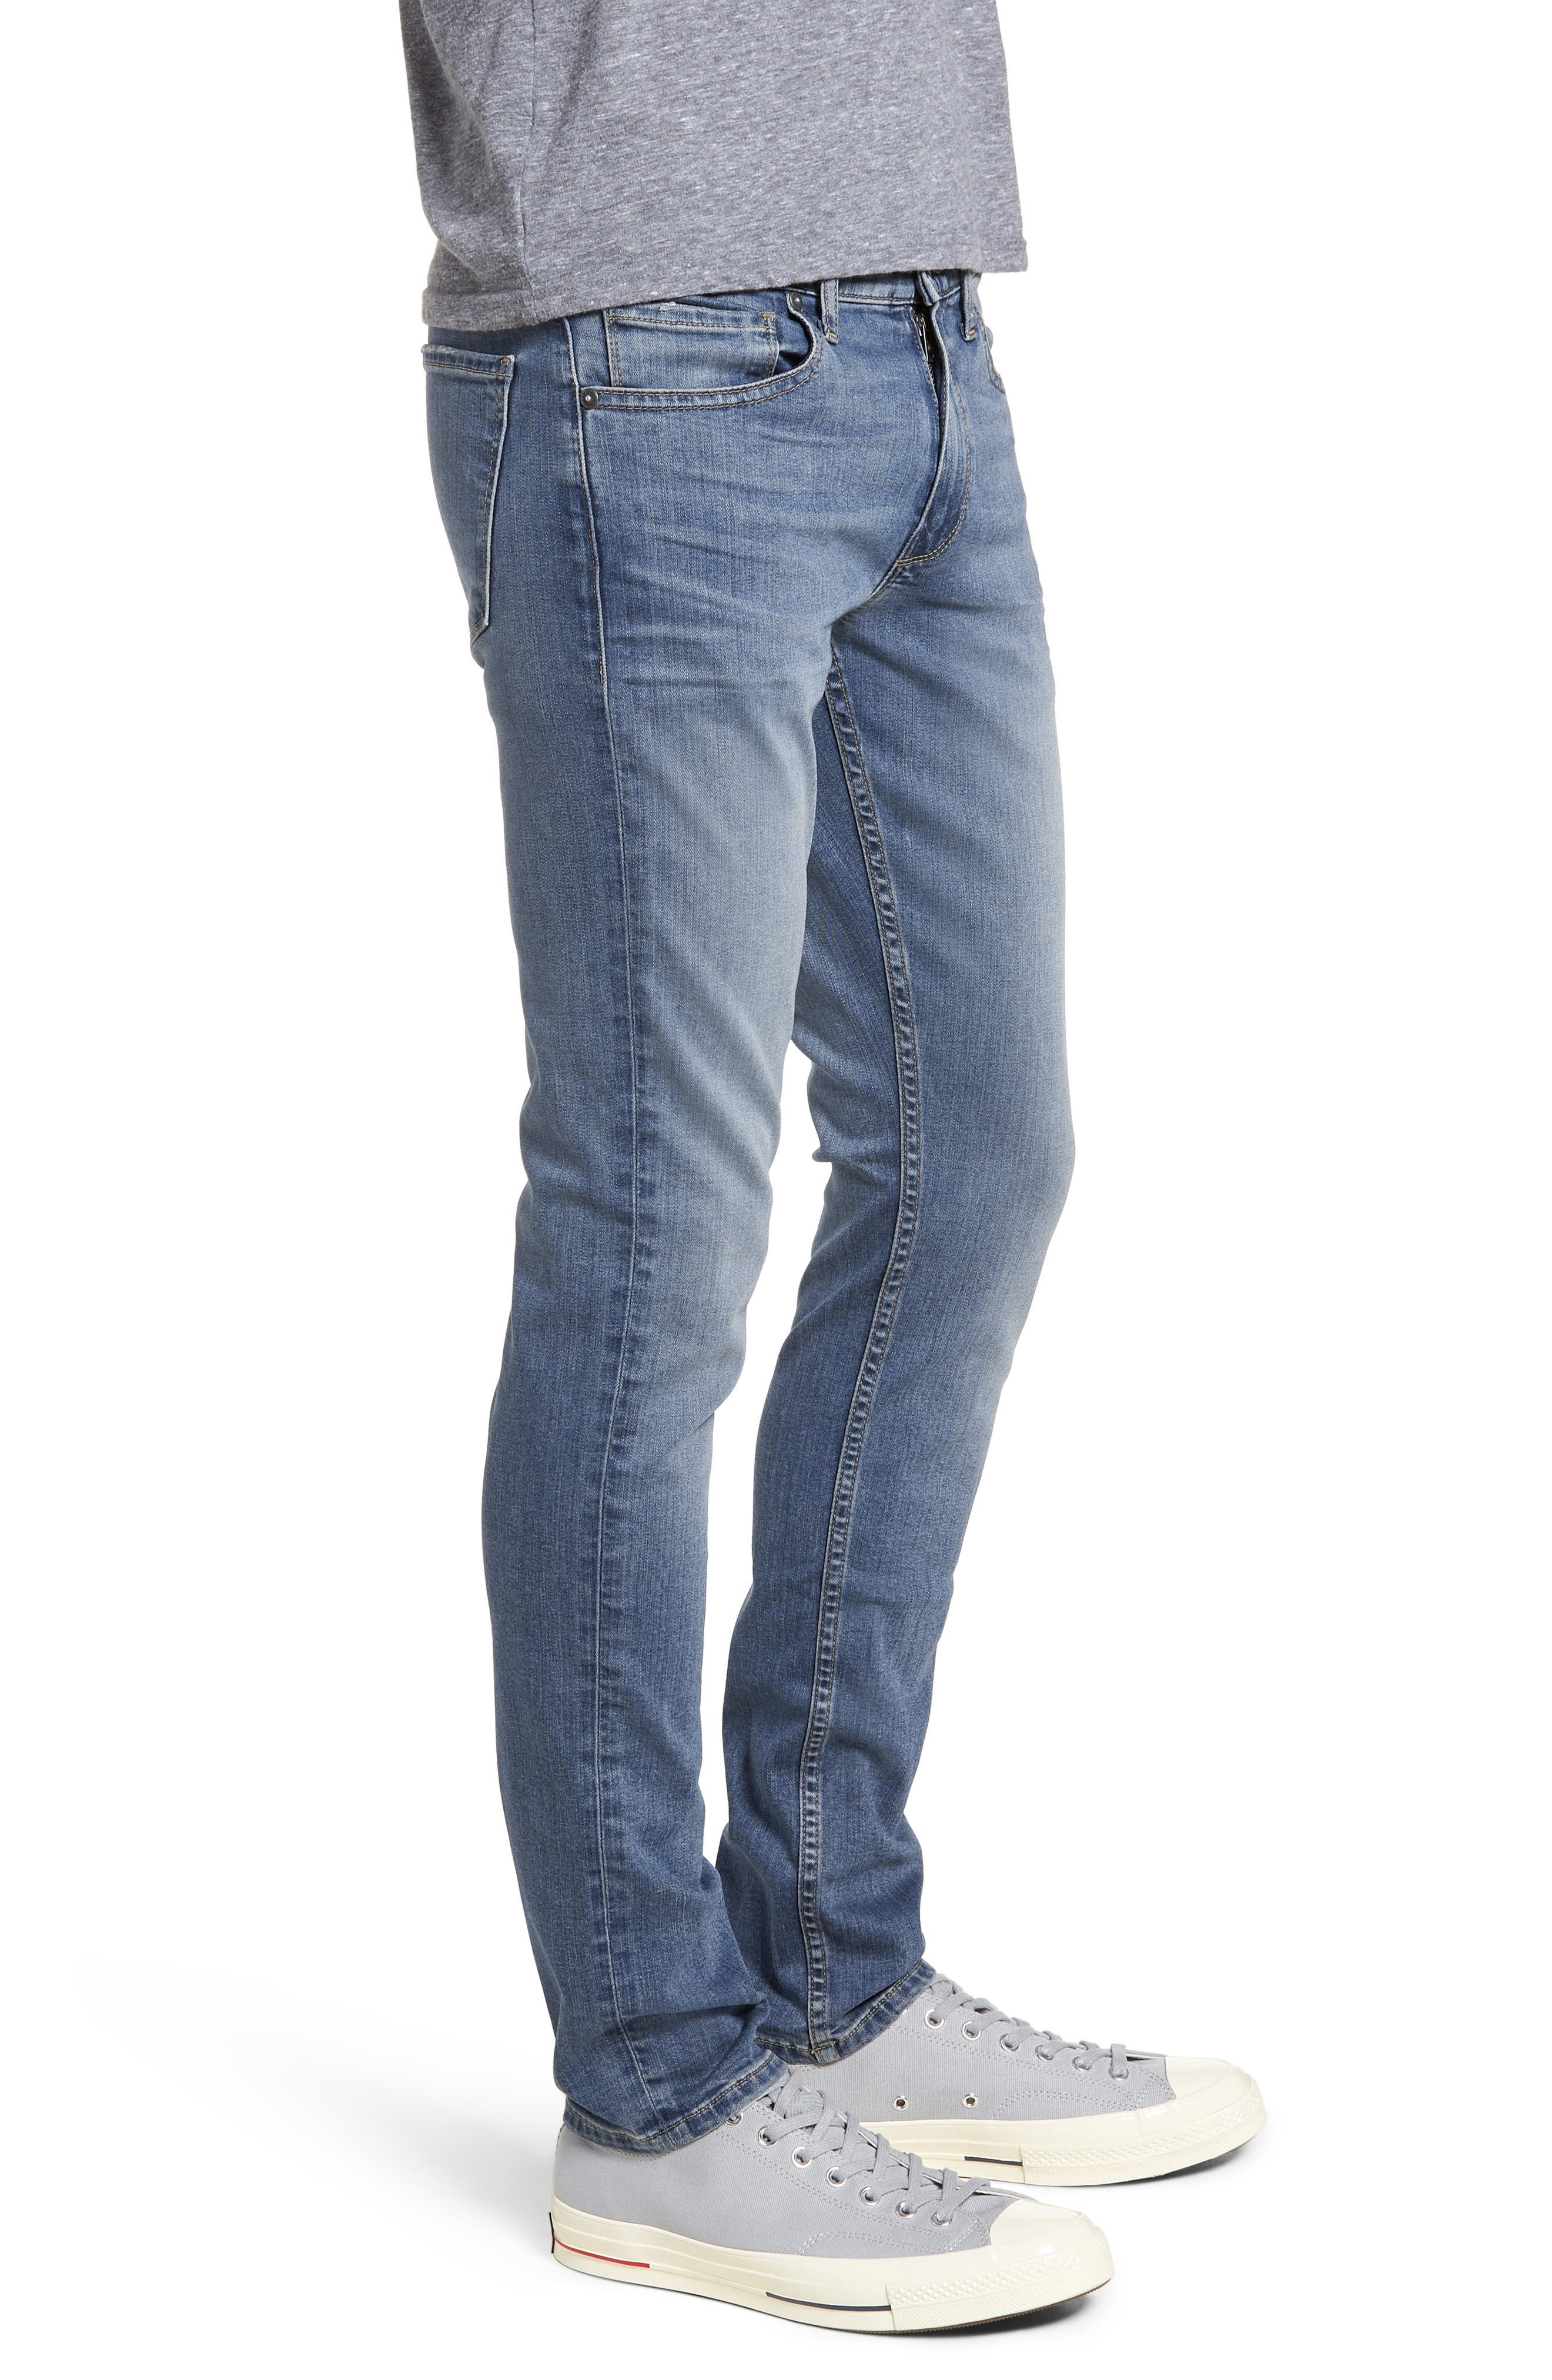 Croft Skinny Fit Jeans,                             Alternate thumbnail 3, color,                             400